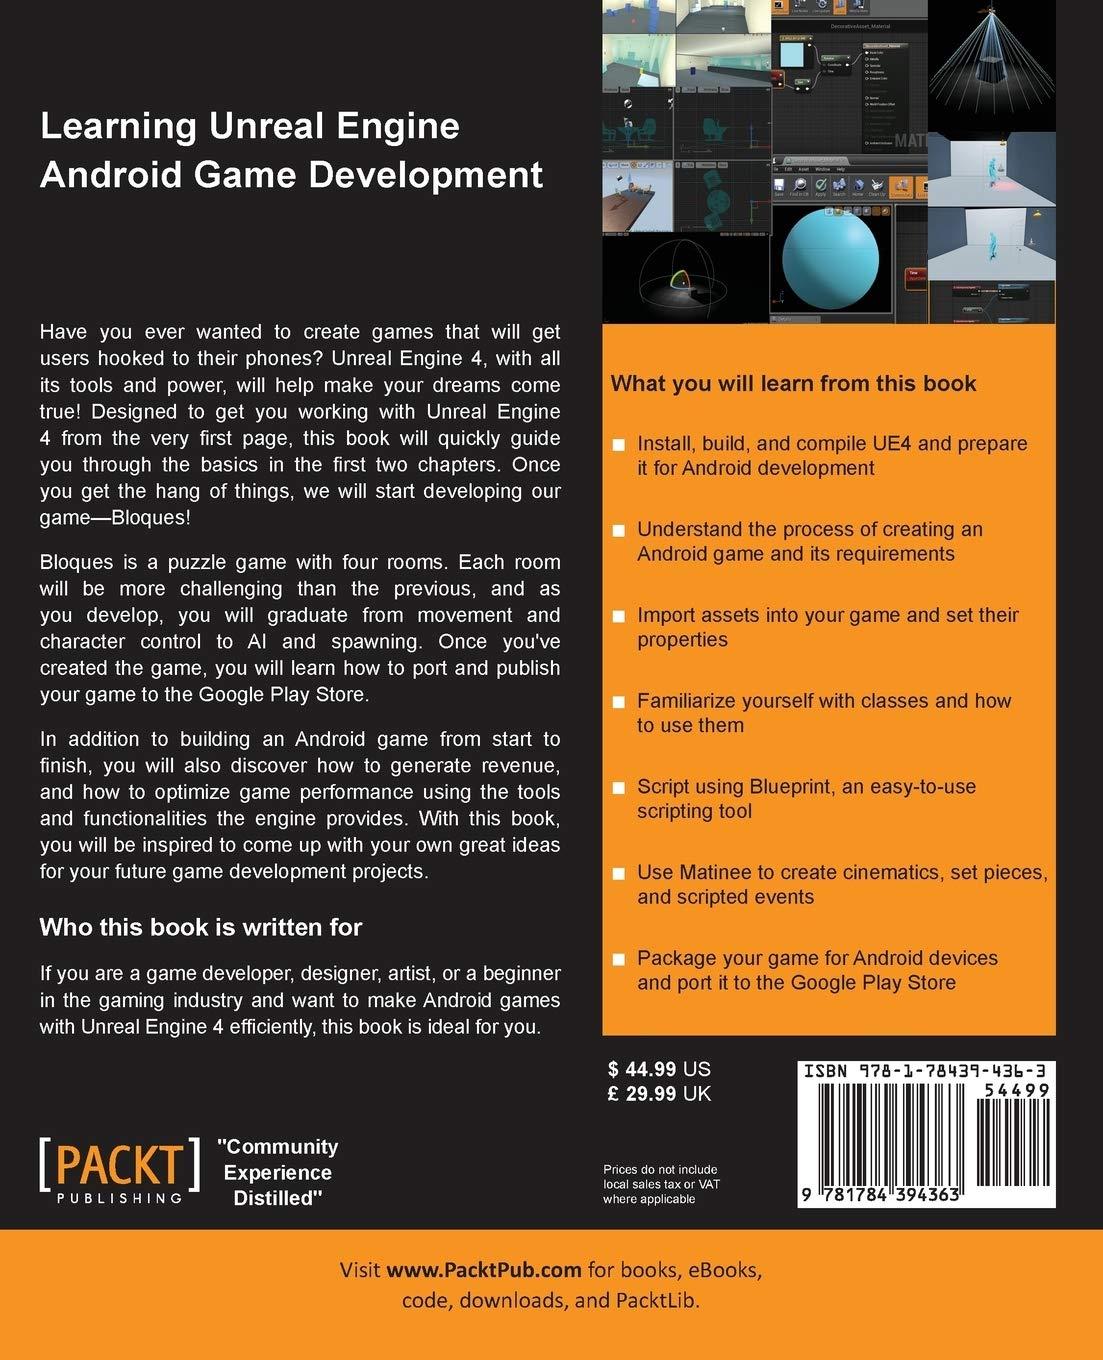 Amazon com: Learning Unreal Engine Android Game Development